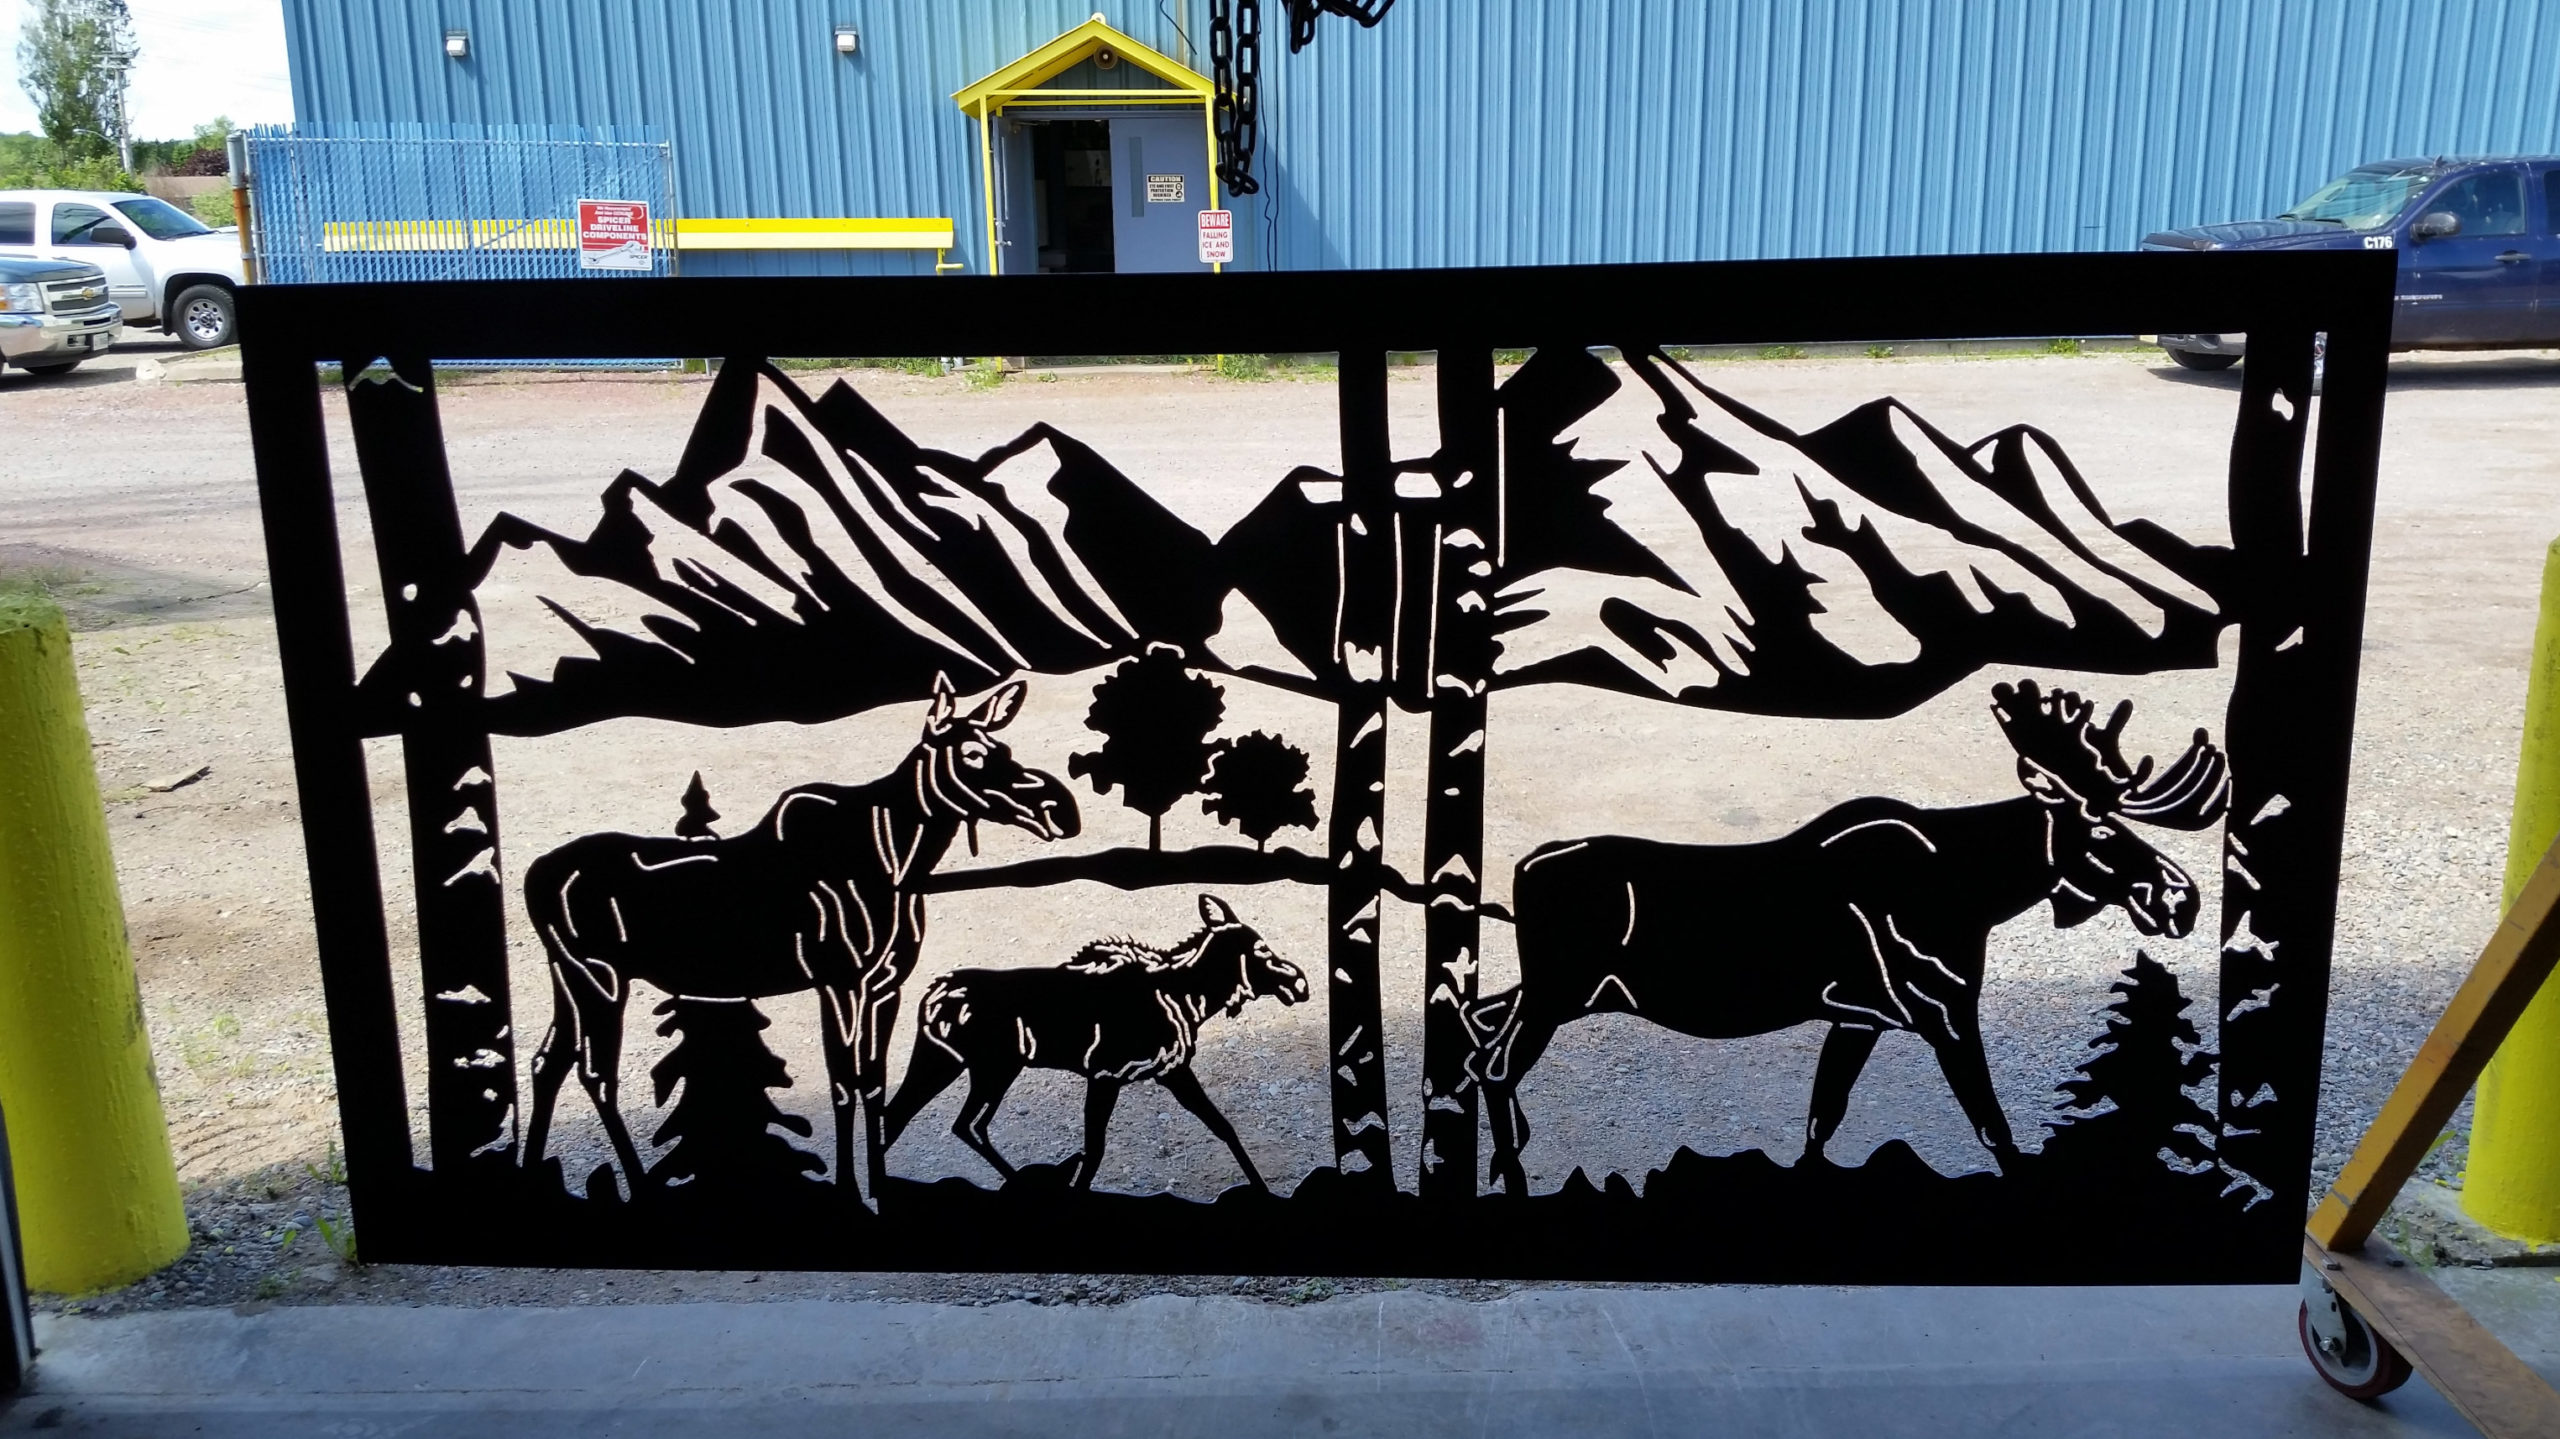 Metal artwork design of a moose family as part of a steel gate structure